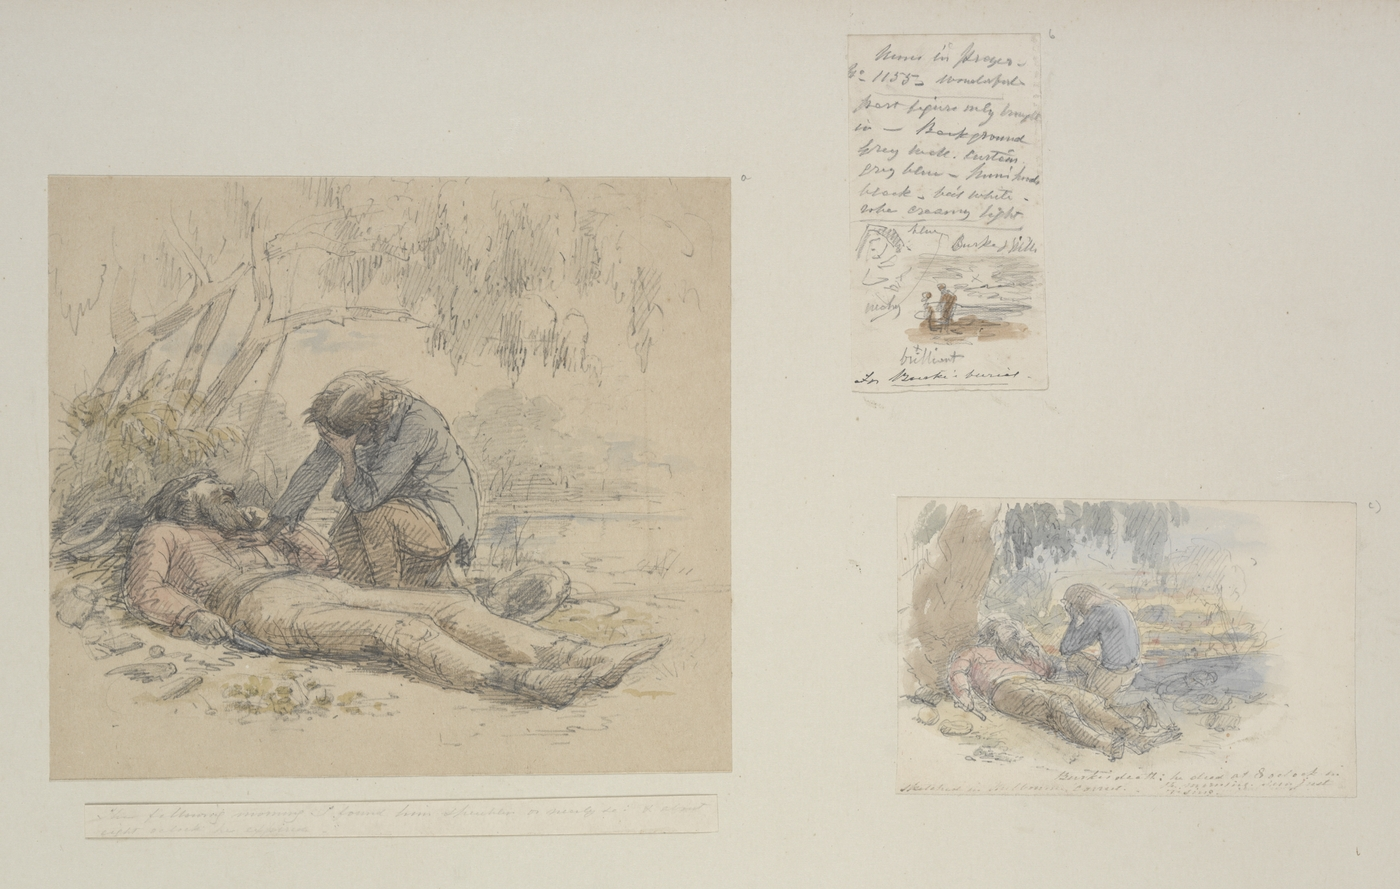 Depictions of Burke's Death